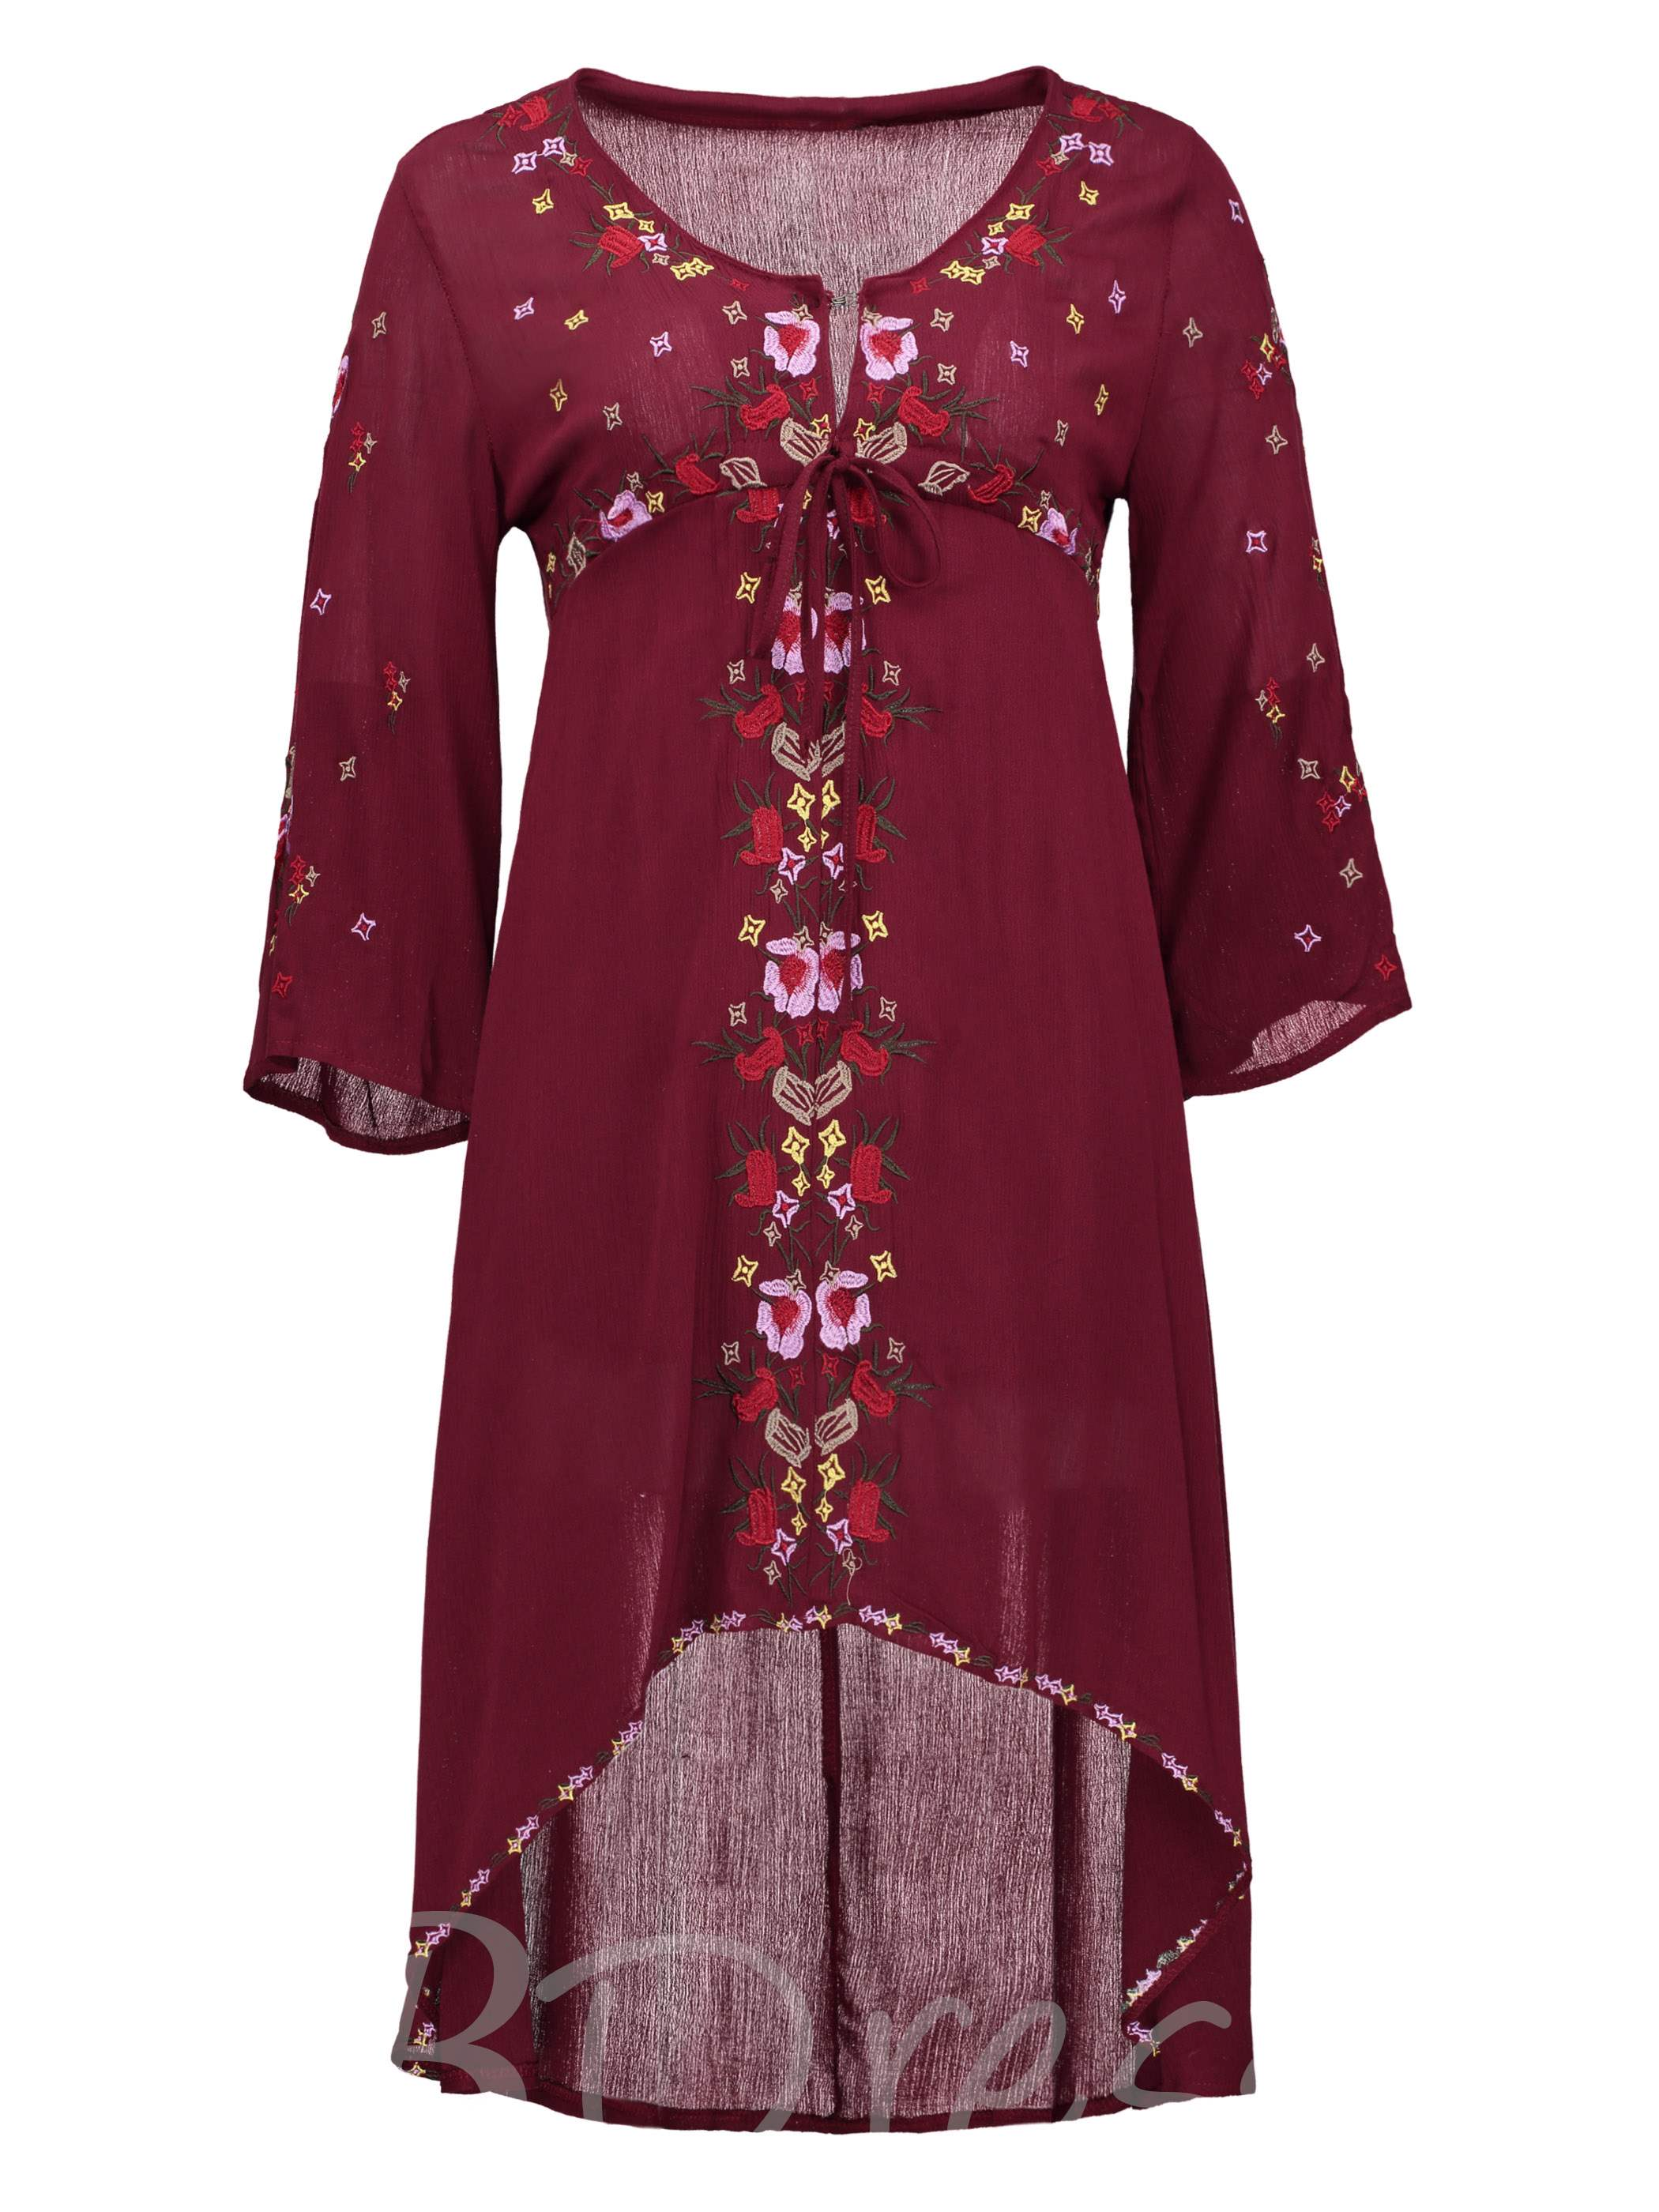 V-Neck Floral Embroideried Women's Asymmetrical Dress, Young17, 13099030